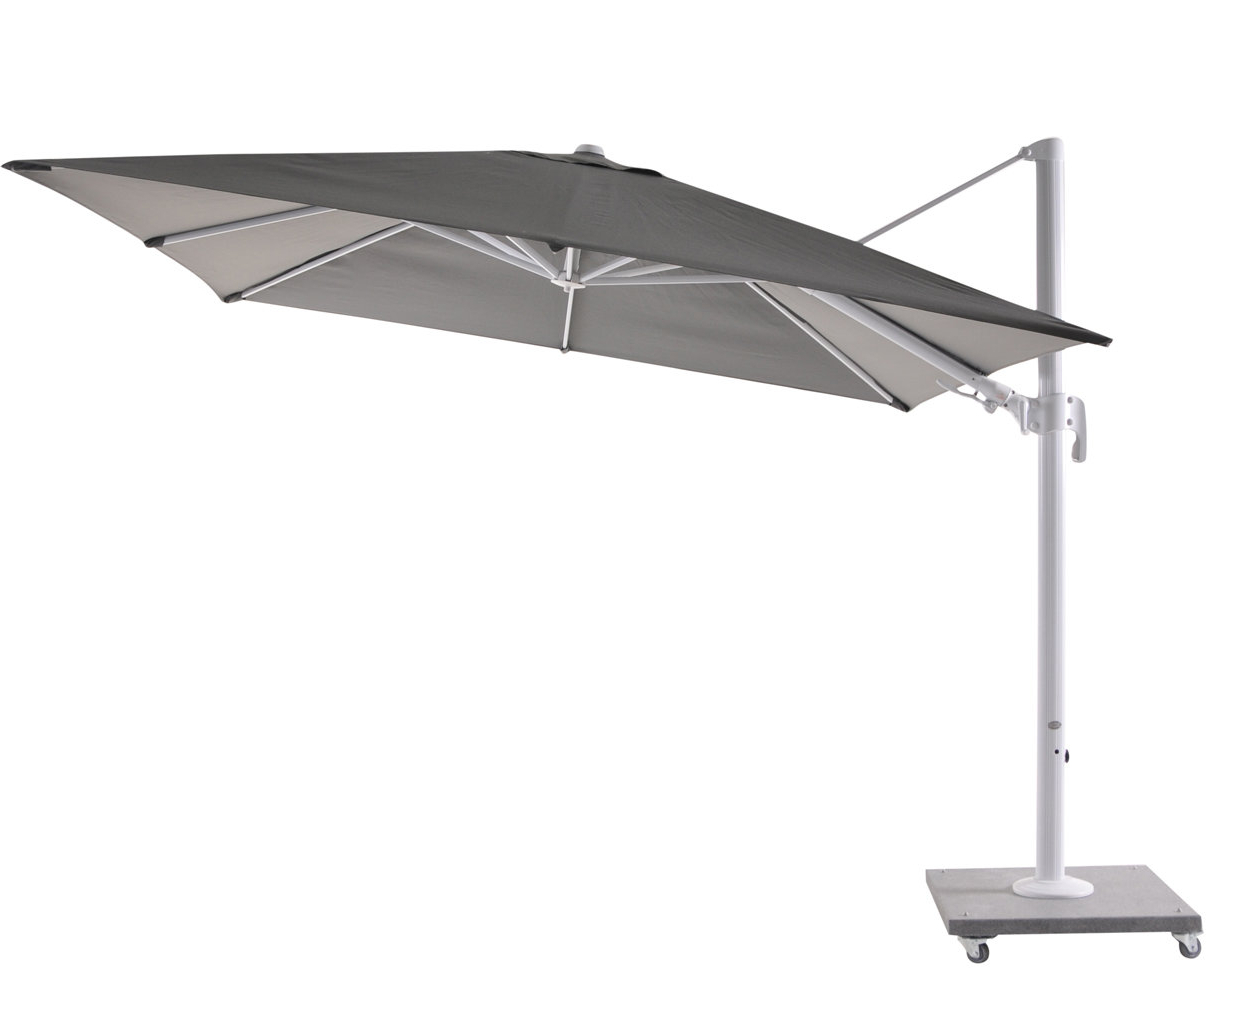 Iyanna Cantilever Umbrellas Inside Best And Newest Bozarth 10' Square Cantilever Umbrella (Gallery 17 of 20)